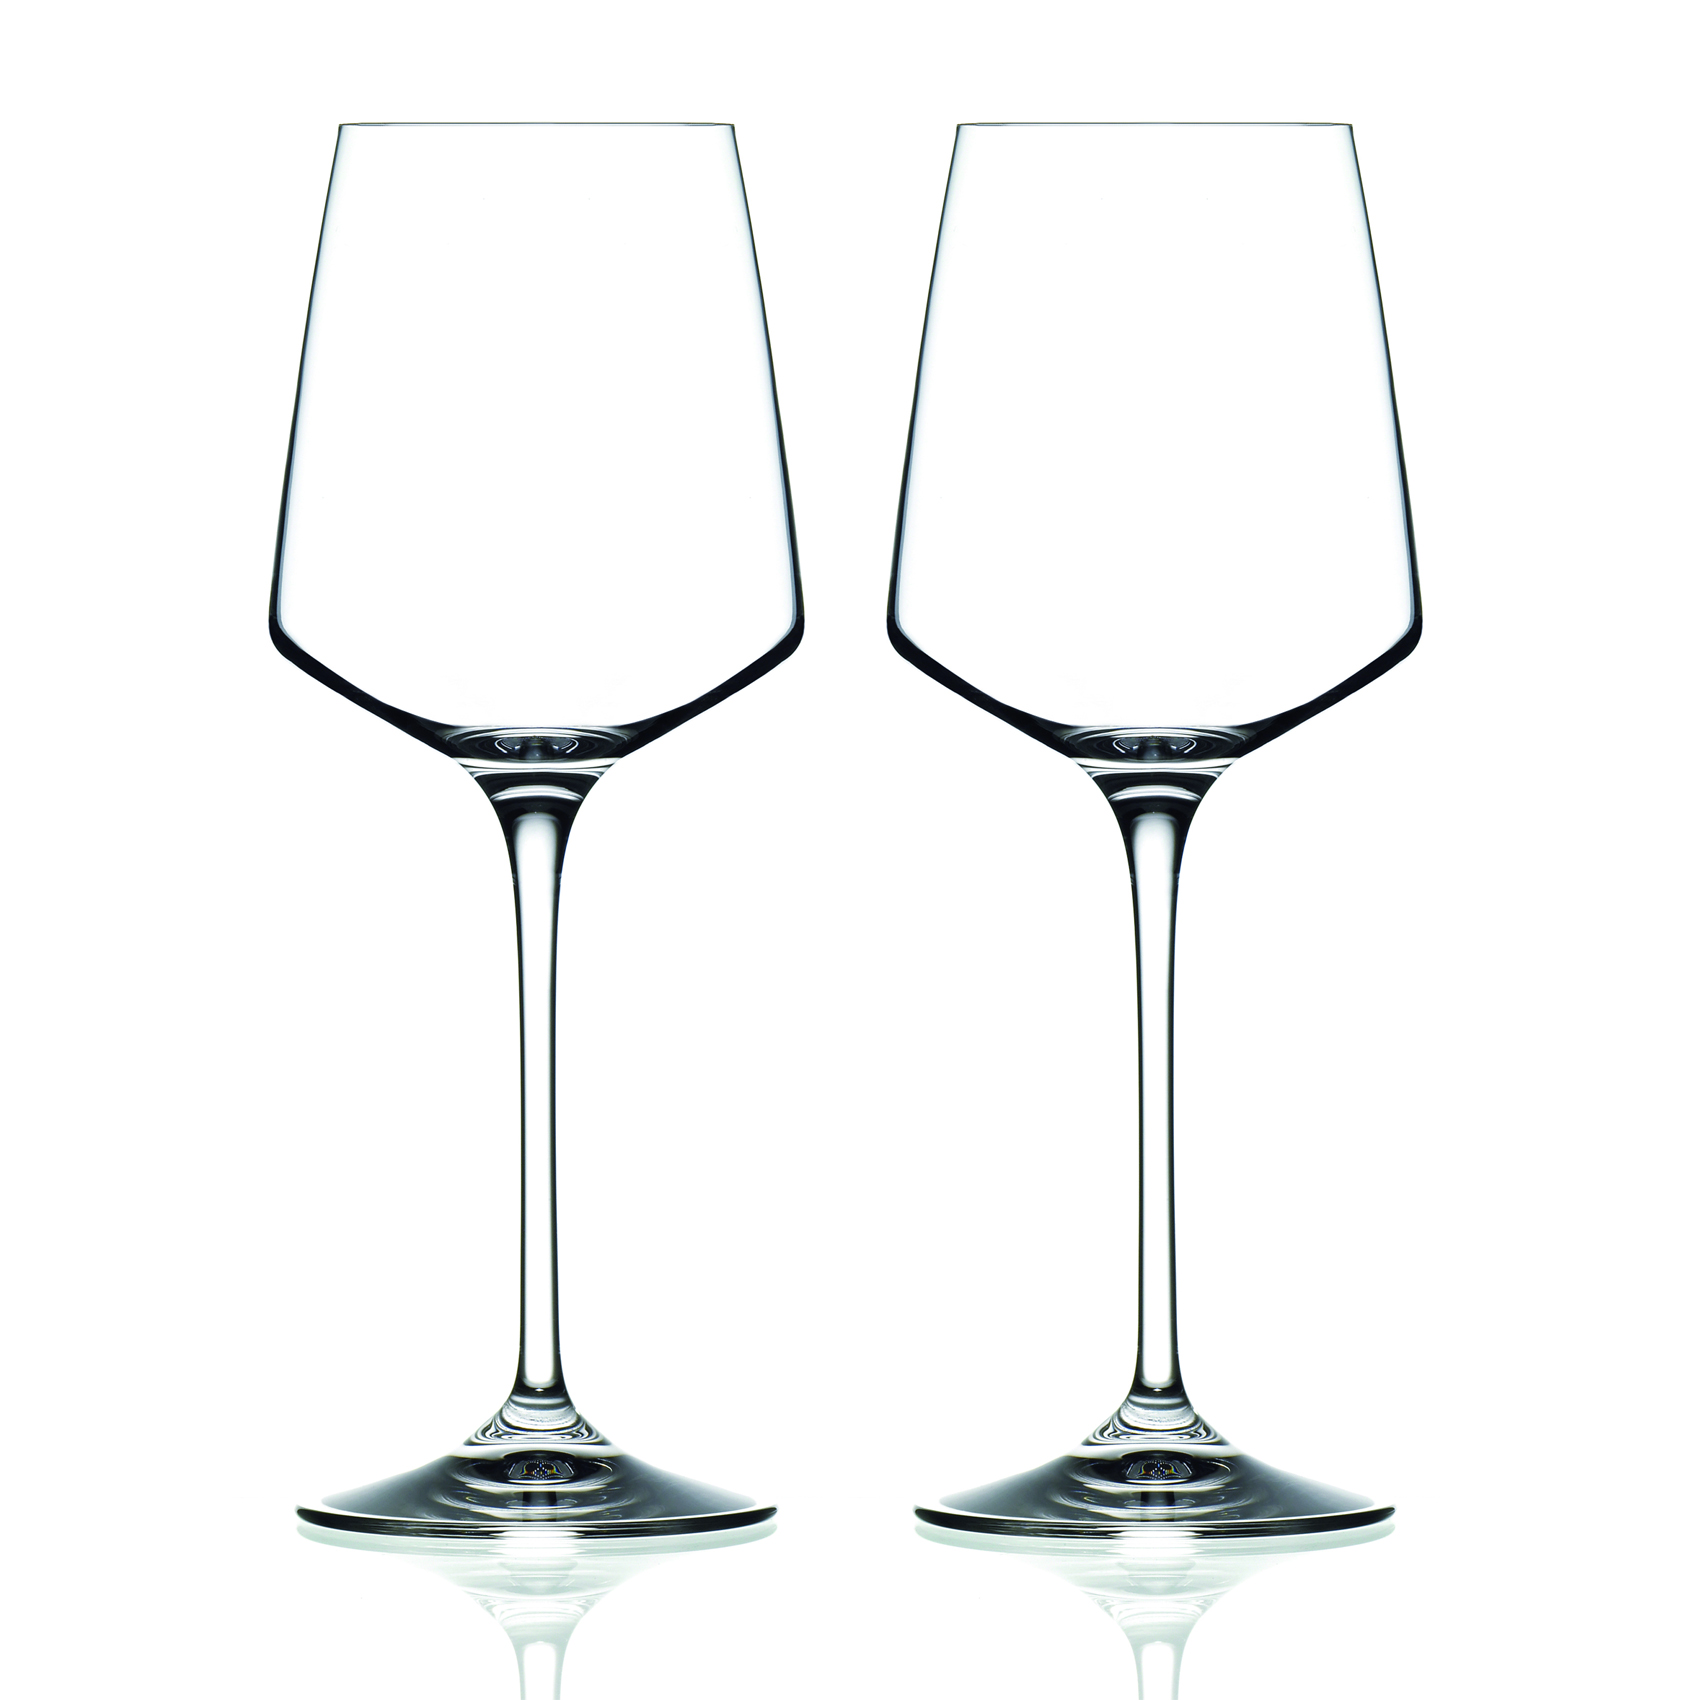 High Quality Wine Glasses 2x Rcr Elegant White Wine Glass Goblet Premium Italian